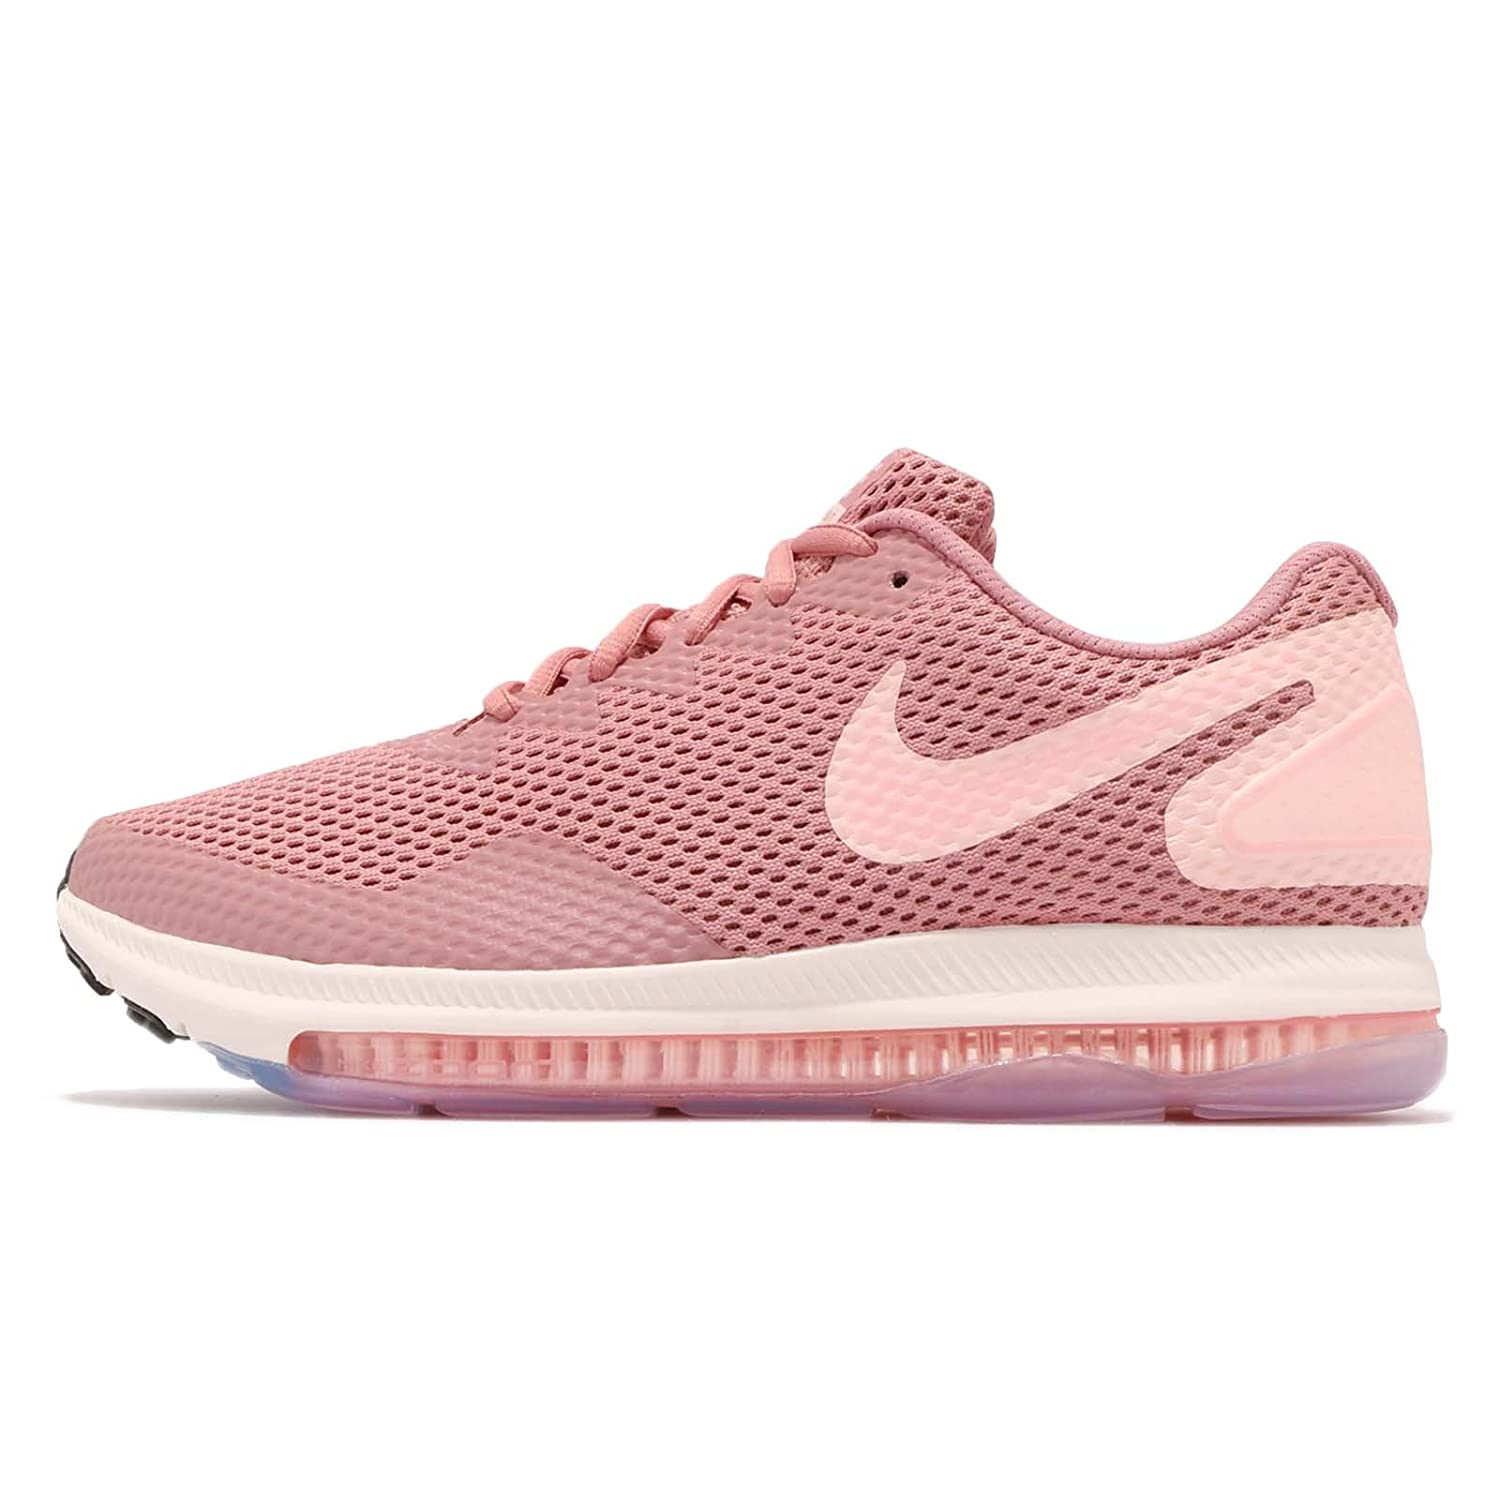 Nike Damen W Zoom All Out Fitnessschuhe Low 2 Fitnessschuhe Out ebd32c